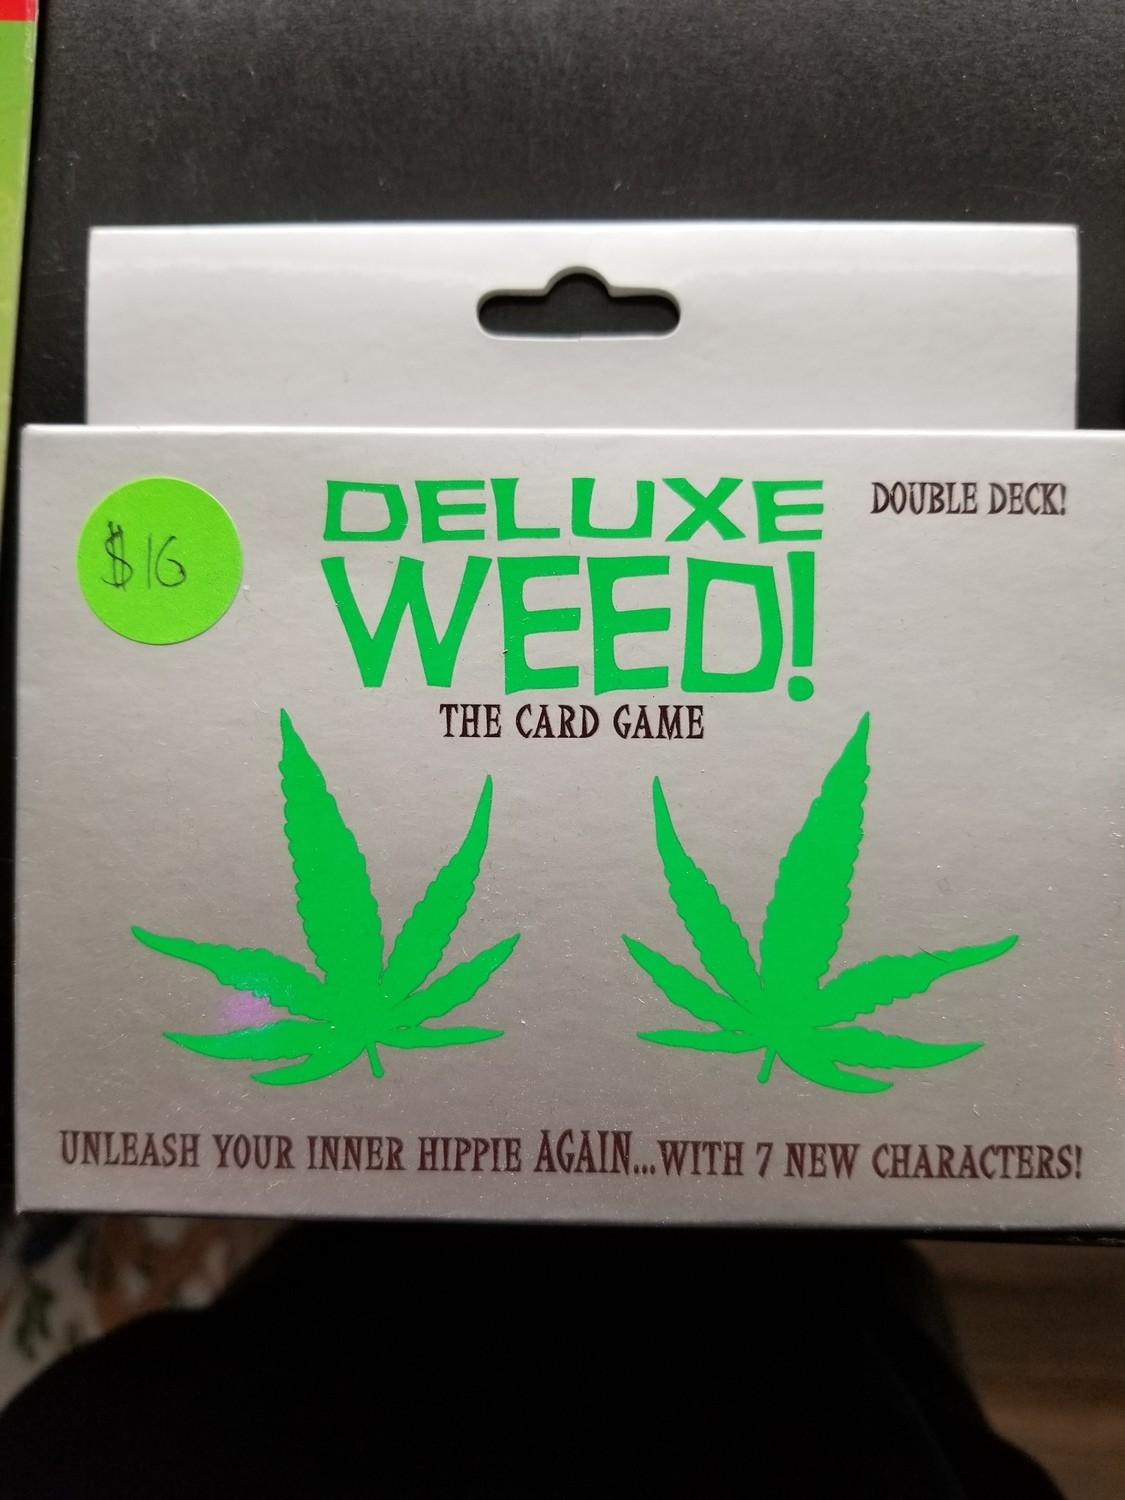 GAME WEED DELUXE EDITION